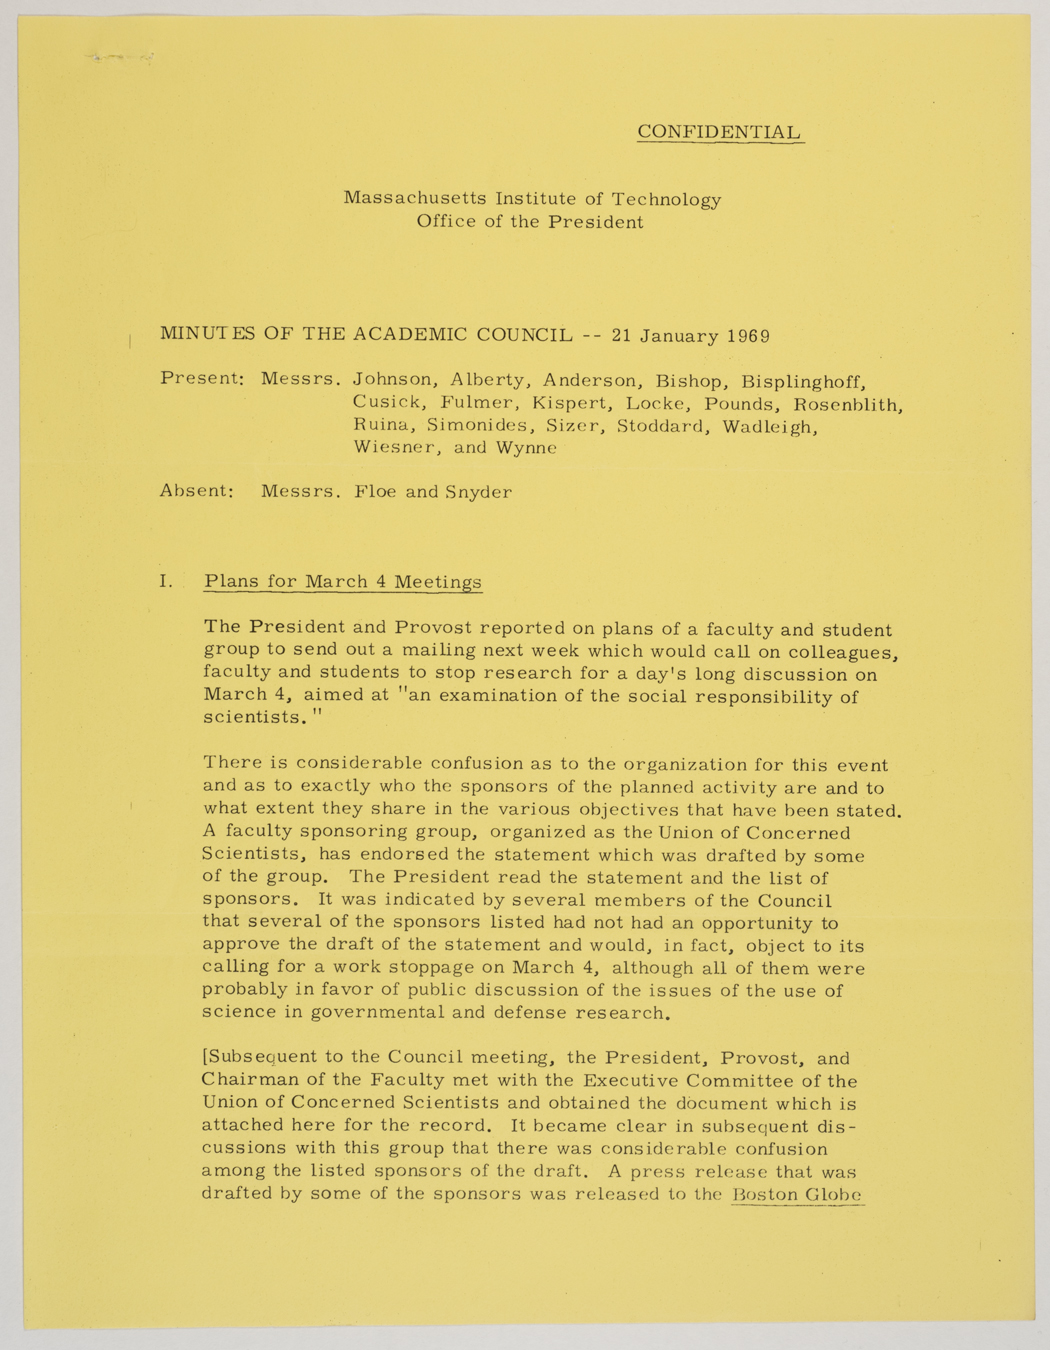 Minutes of the Academic Council, 1969 January 21, AC-0378, Box 13.